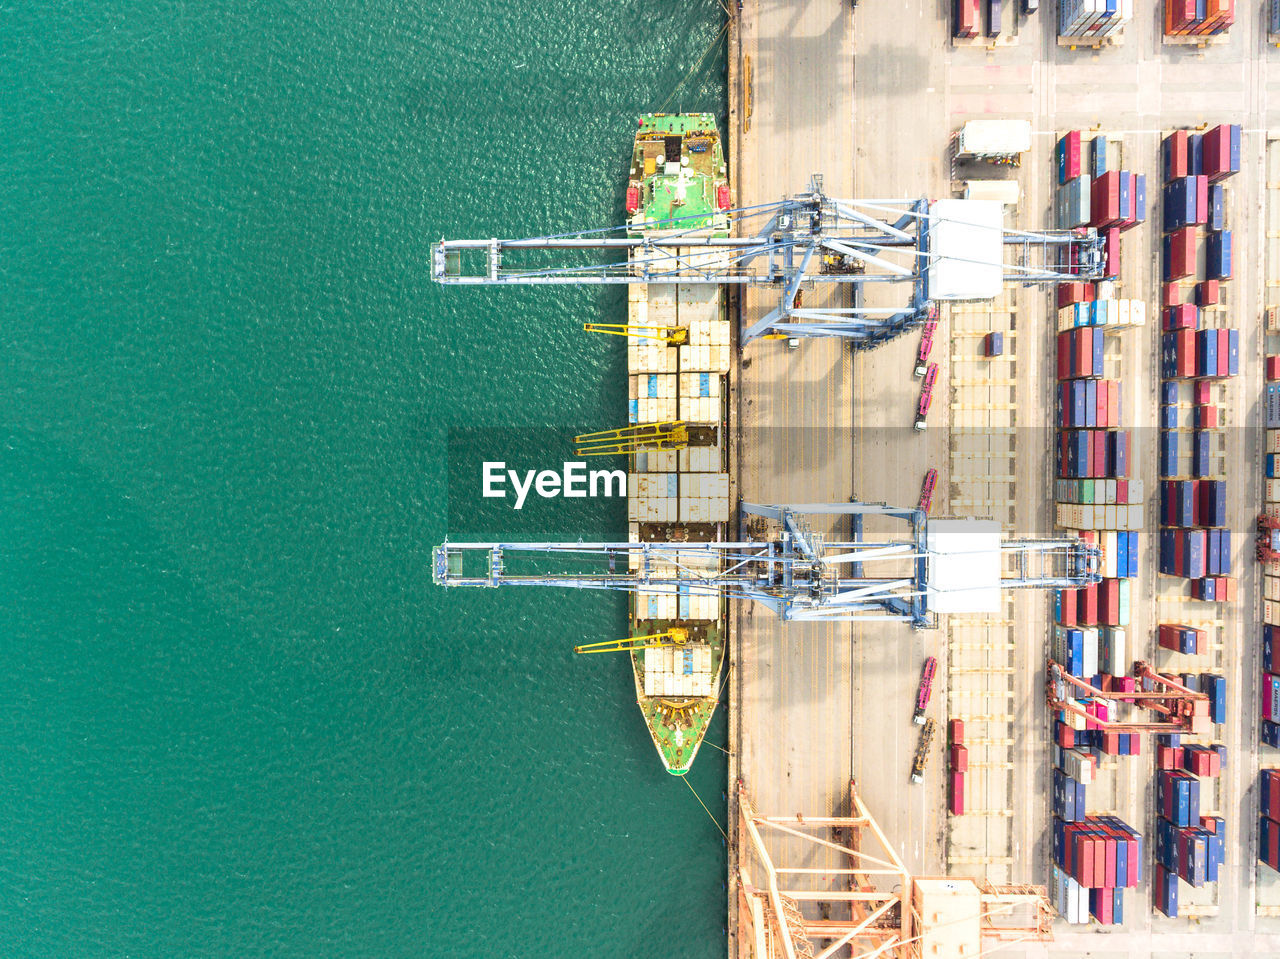 High Angle View Of Cargo Container With Crane By Sea